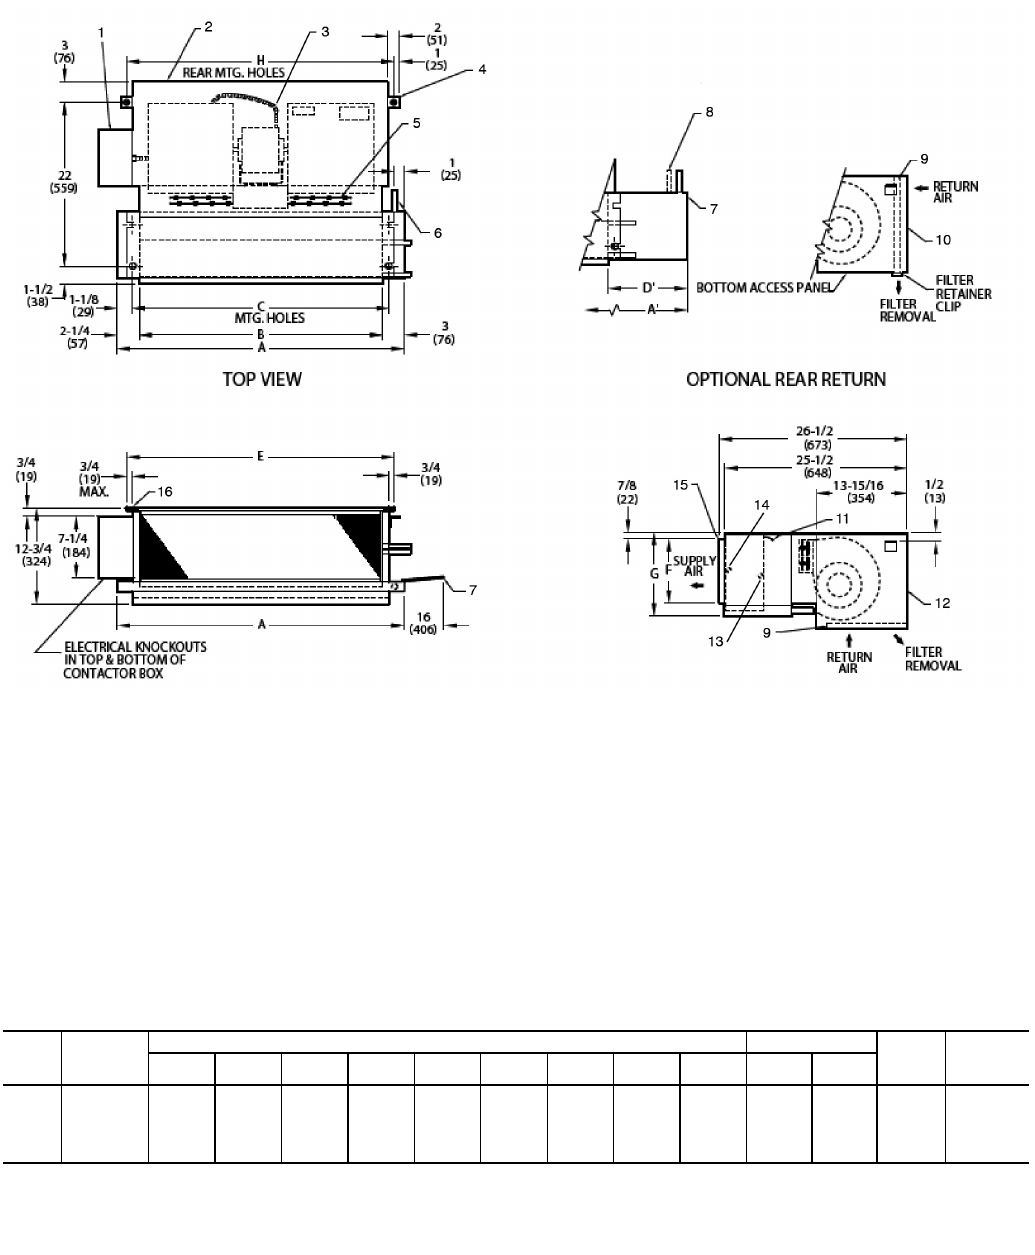 Page 9 of Carrier Air Conditioner 42S User Guide